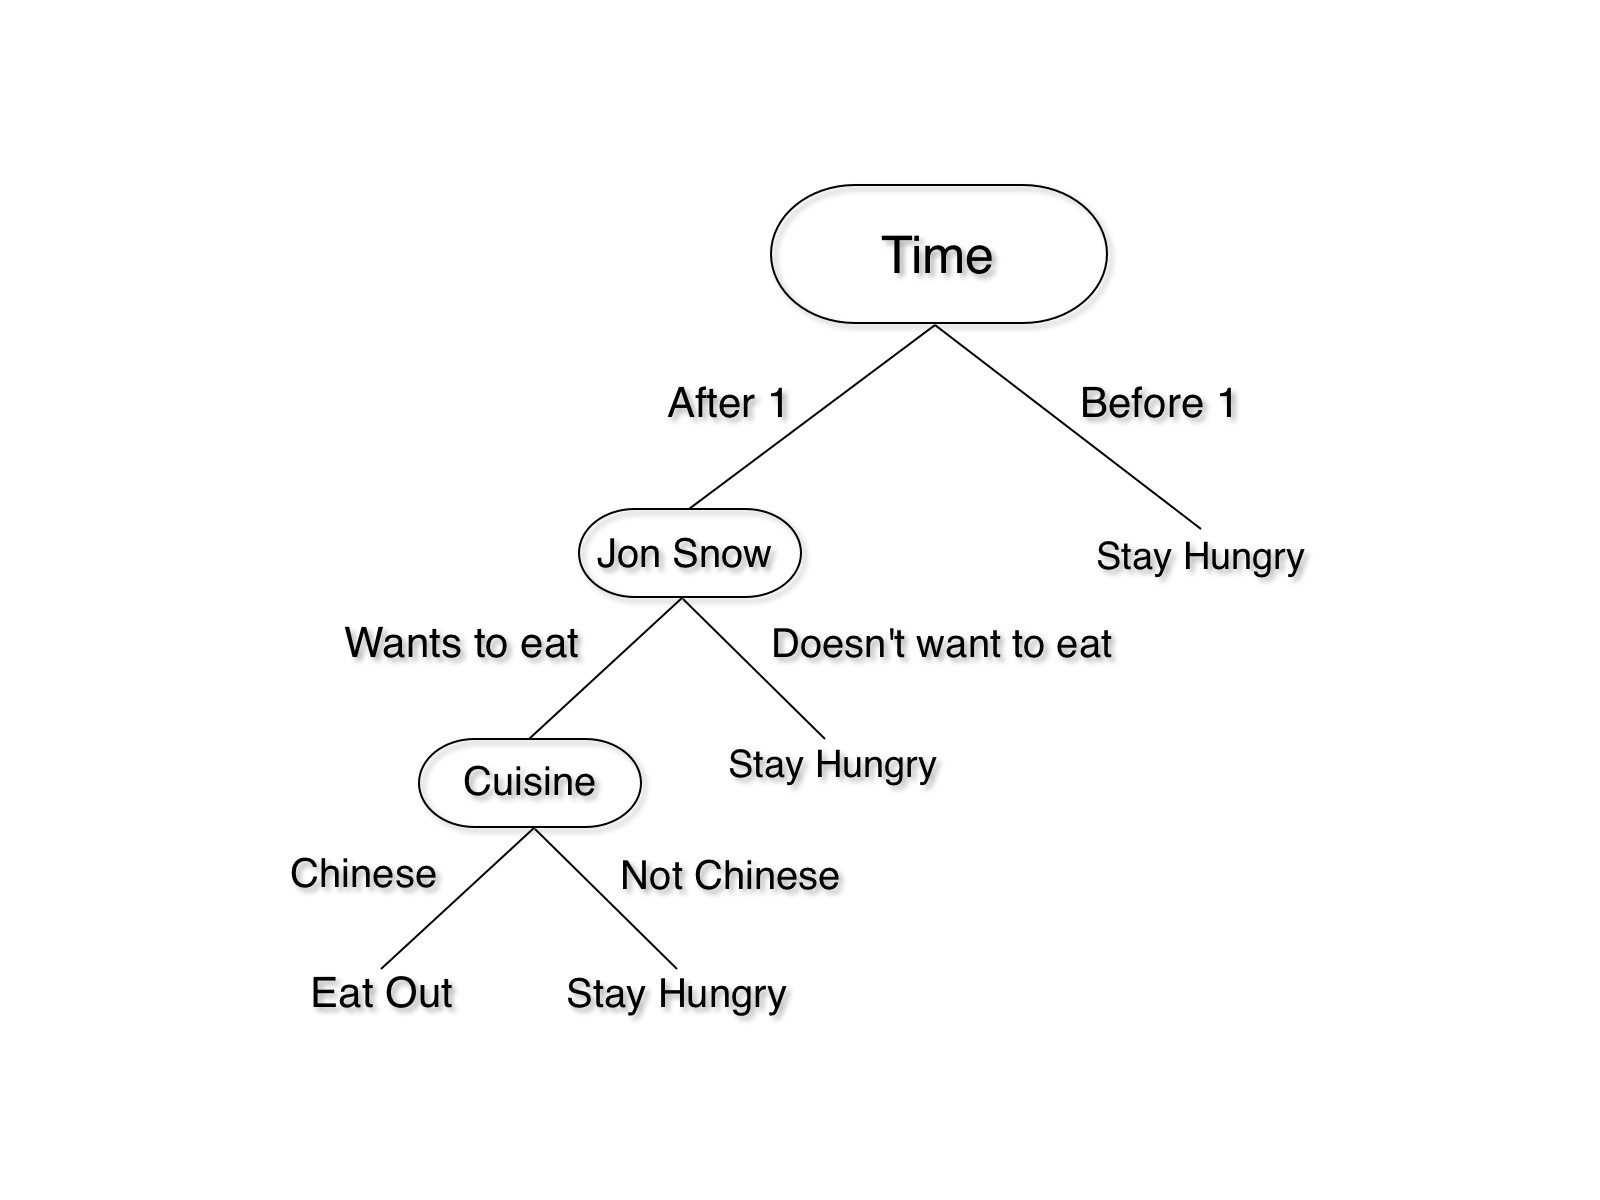 hight resolution of if you want to go to lunch with your friend jon snow to a place that serves chinese food the logic can be summarized in this tree